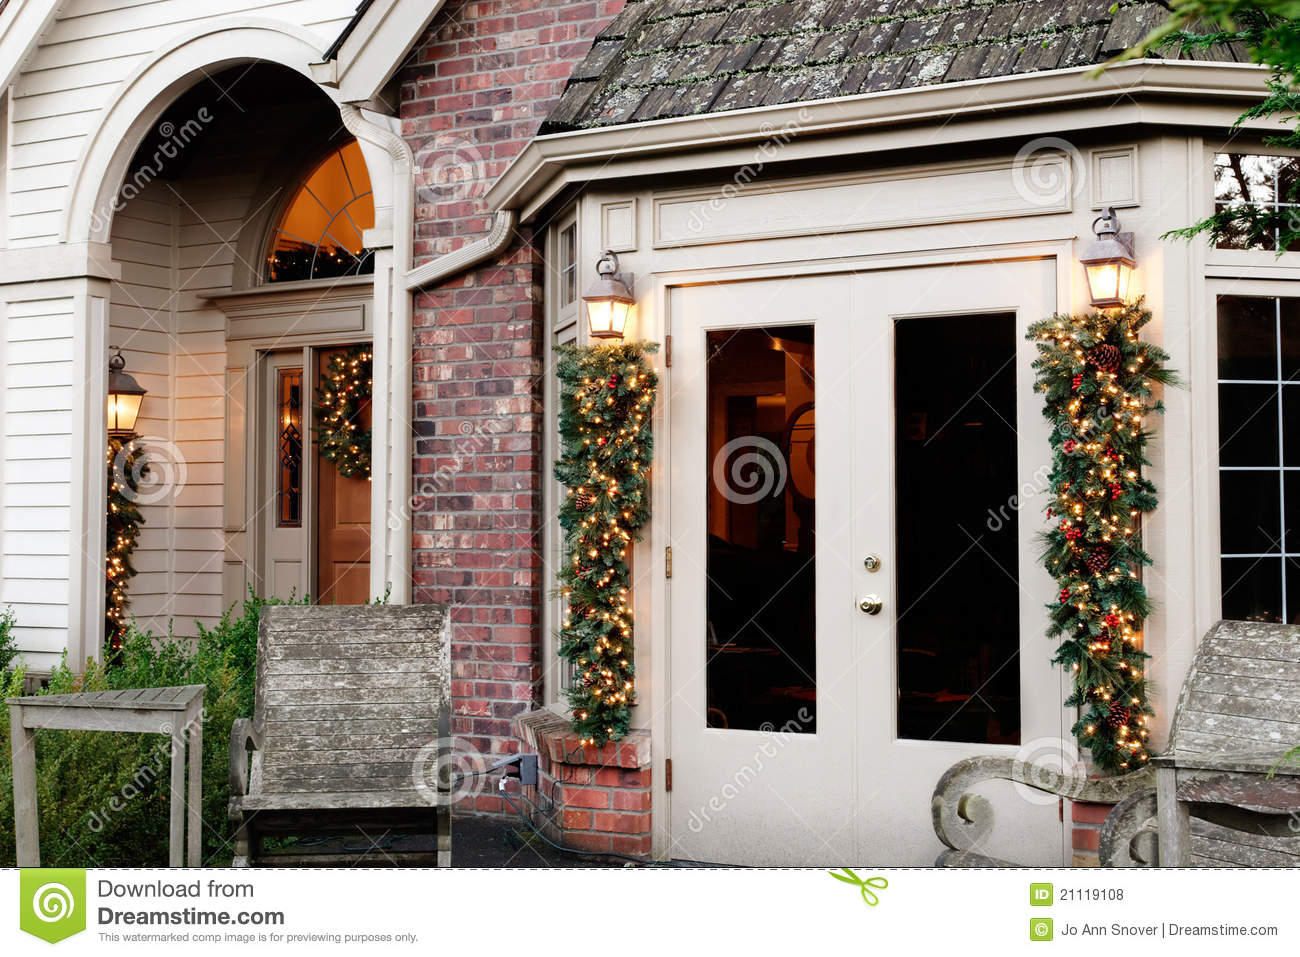 Holiday home exterior decorations royalty free stock - Christmas decorating exterior house ...